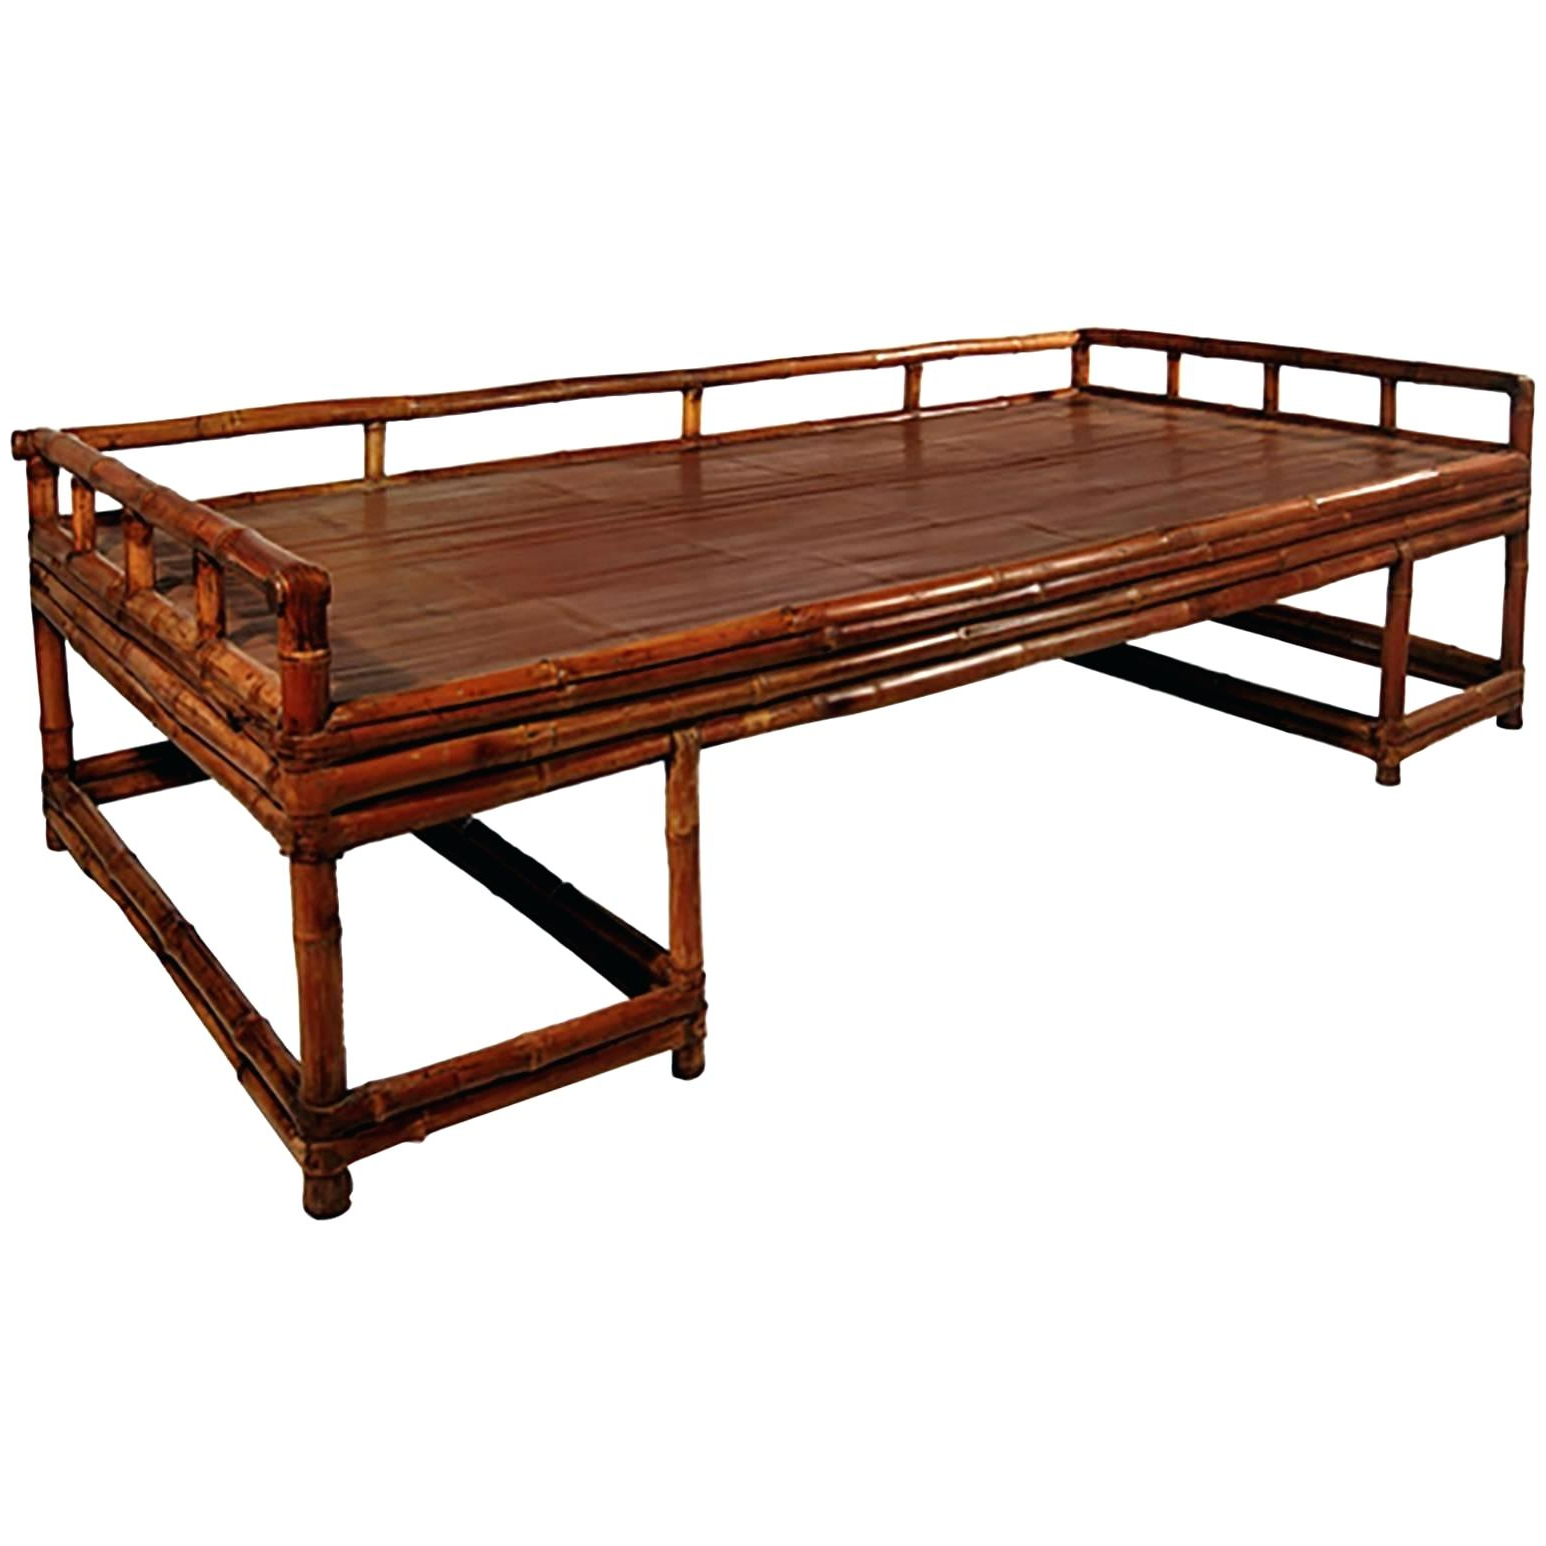 Bamboo Daybed Bamboo Daybed With Canopy Bamboo Daybed With For Best And Newest Bamboo Daybeds With Canopy (View 4 of 25)